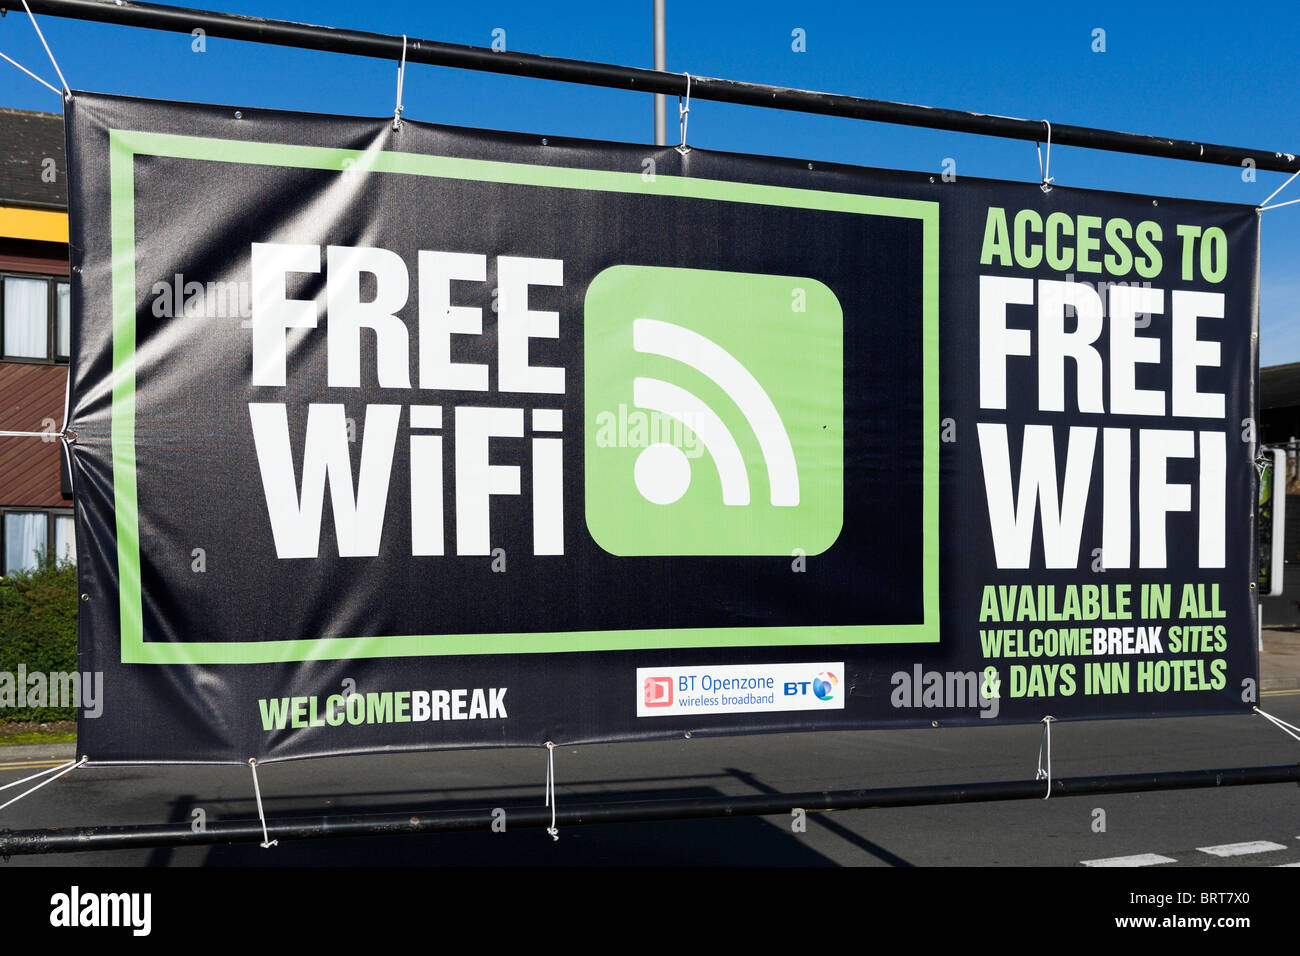 Free WiFi sign at Welcome Break Motorway Service Station, Hartshead, M62, West Yorkshire, England, UK - Stock Image